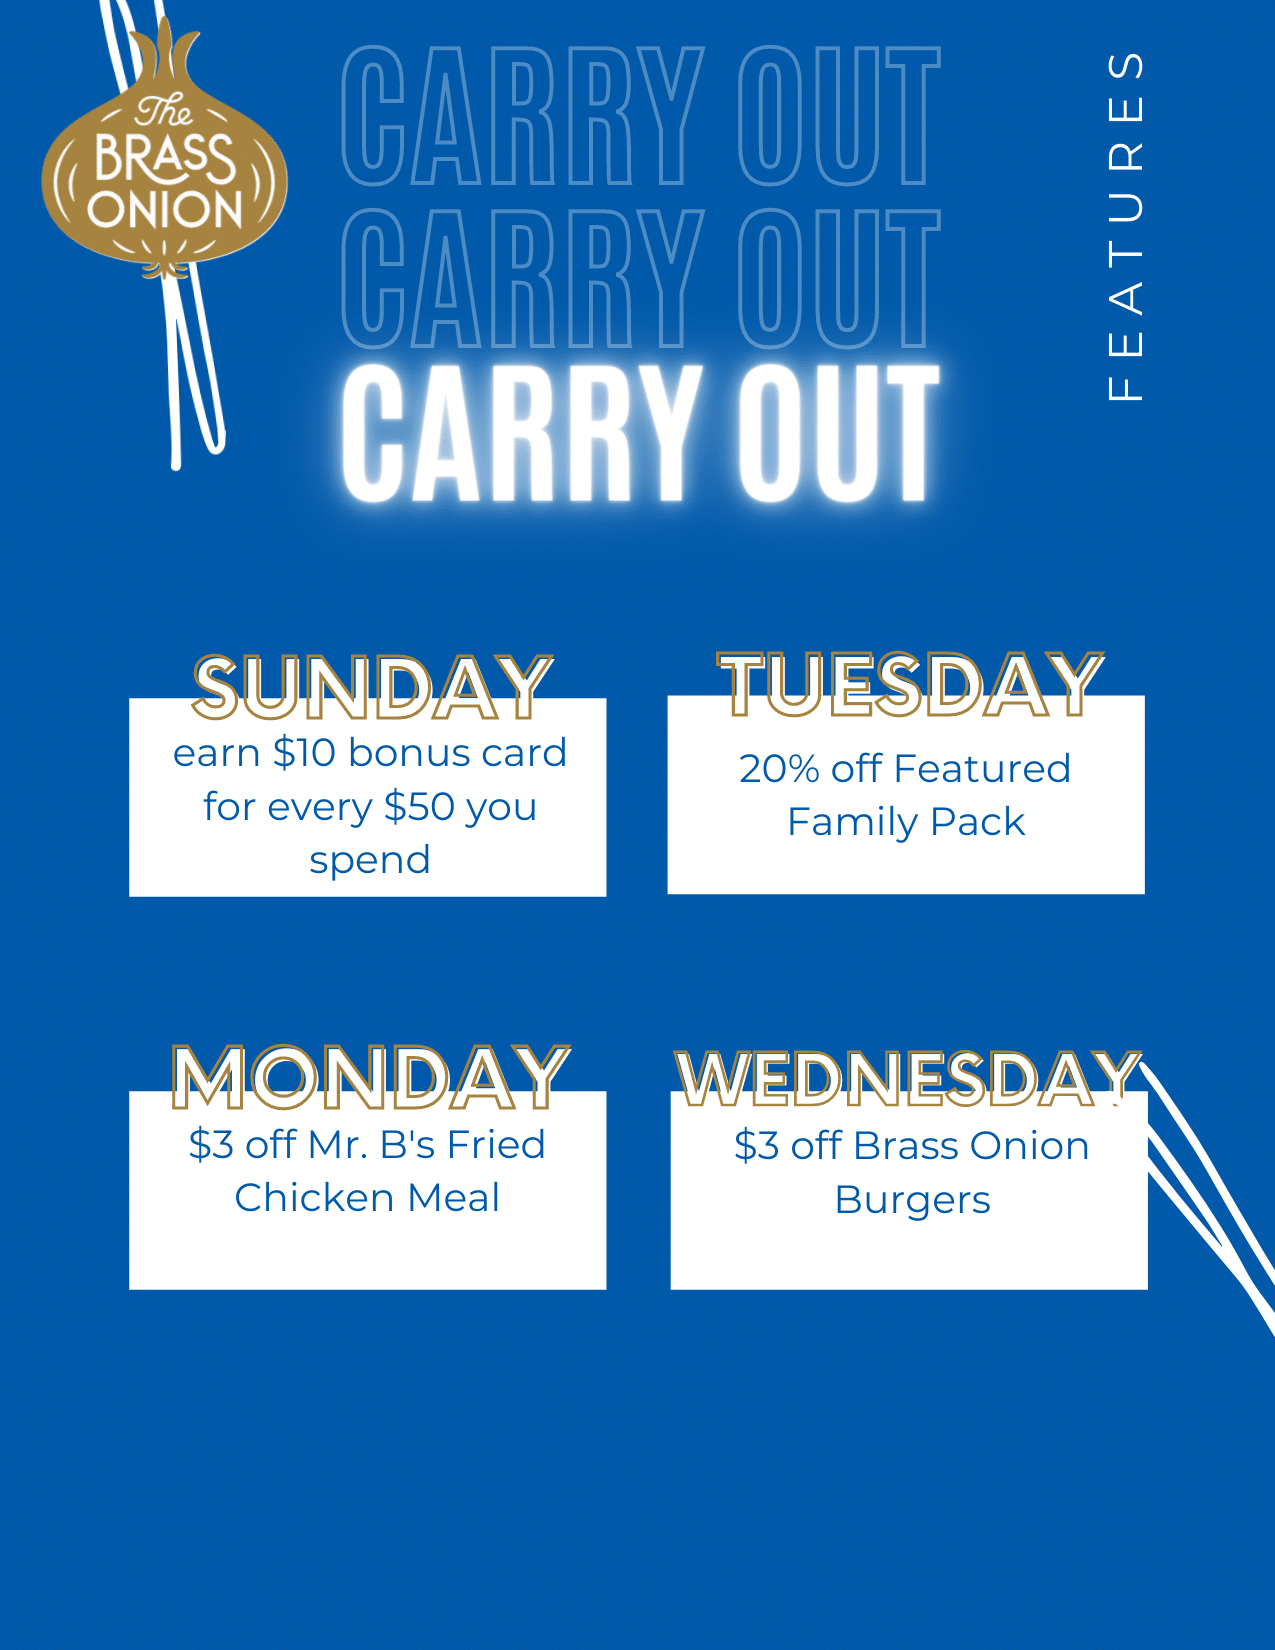 carry out carry out (2)